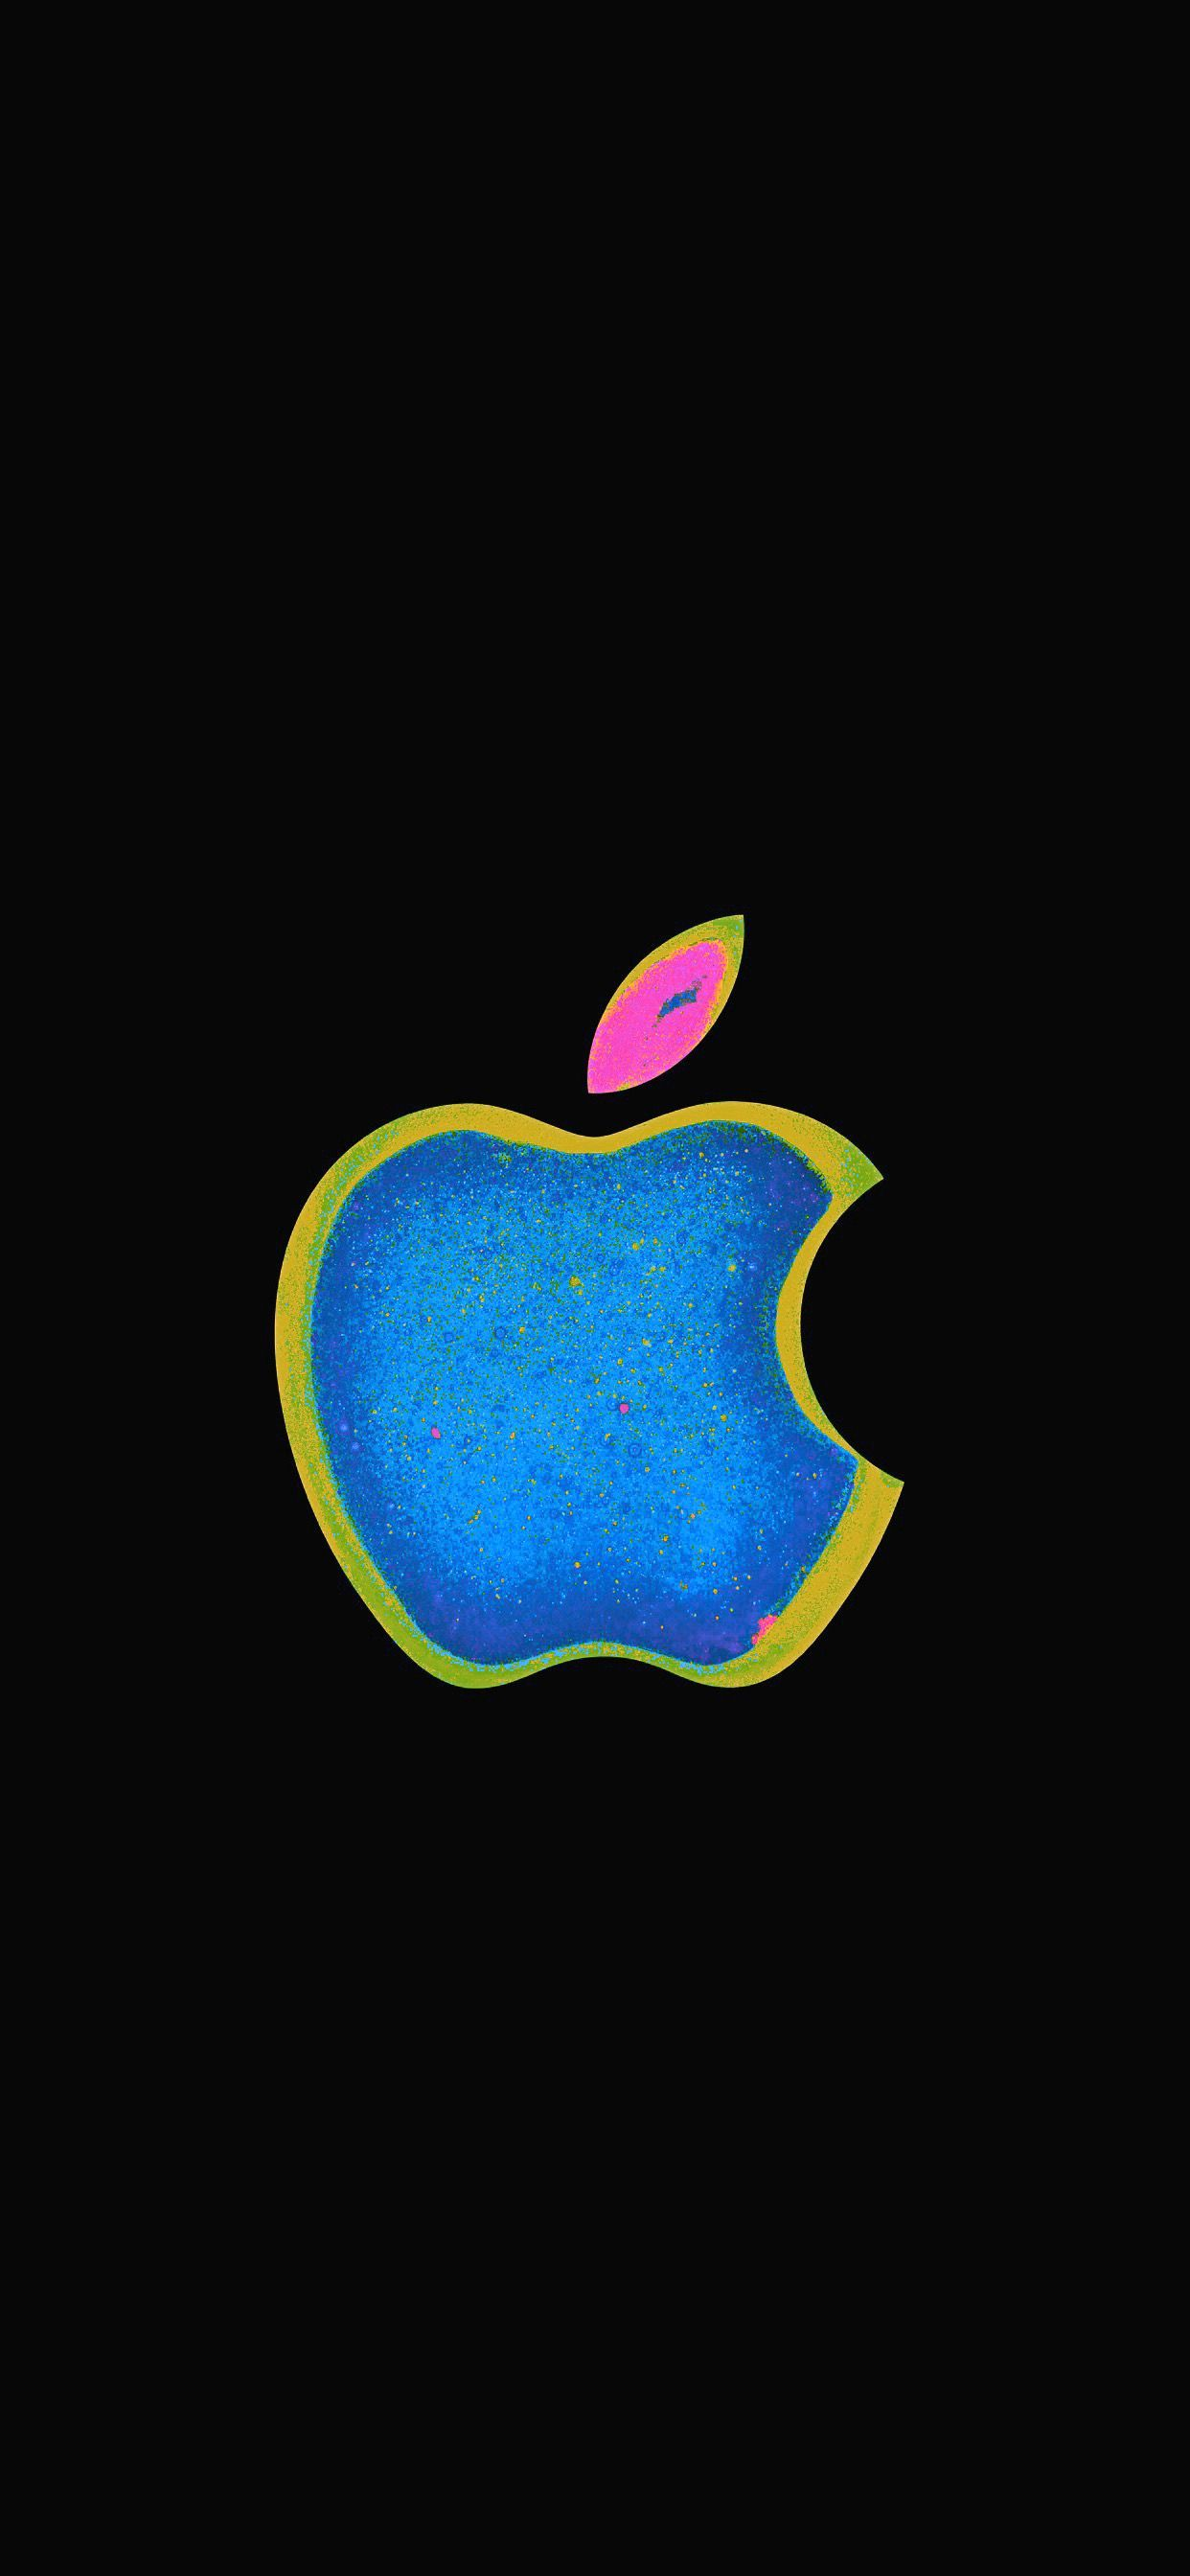 Applelogo Appleiphone Appleipad Ios13 Iphonewallpaper In 2020 Apple Logo Wallpaper Iphone Apple Logo Wallpaper Apple Logo